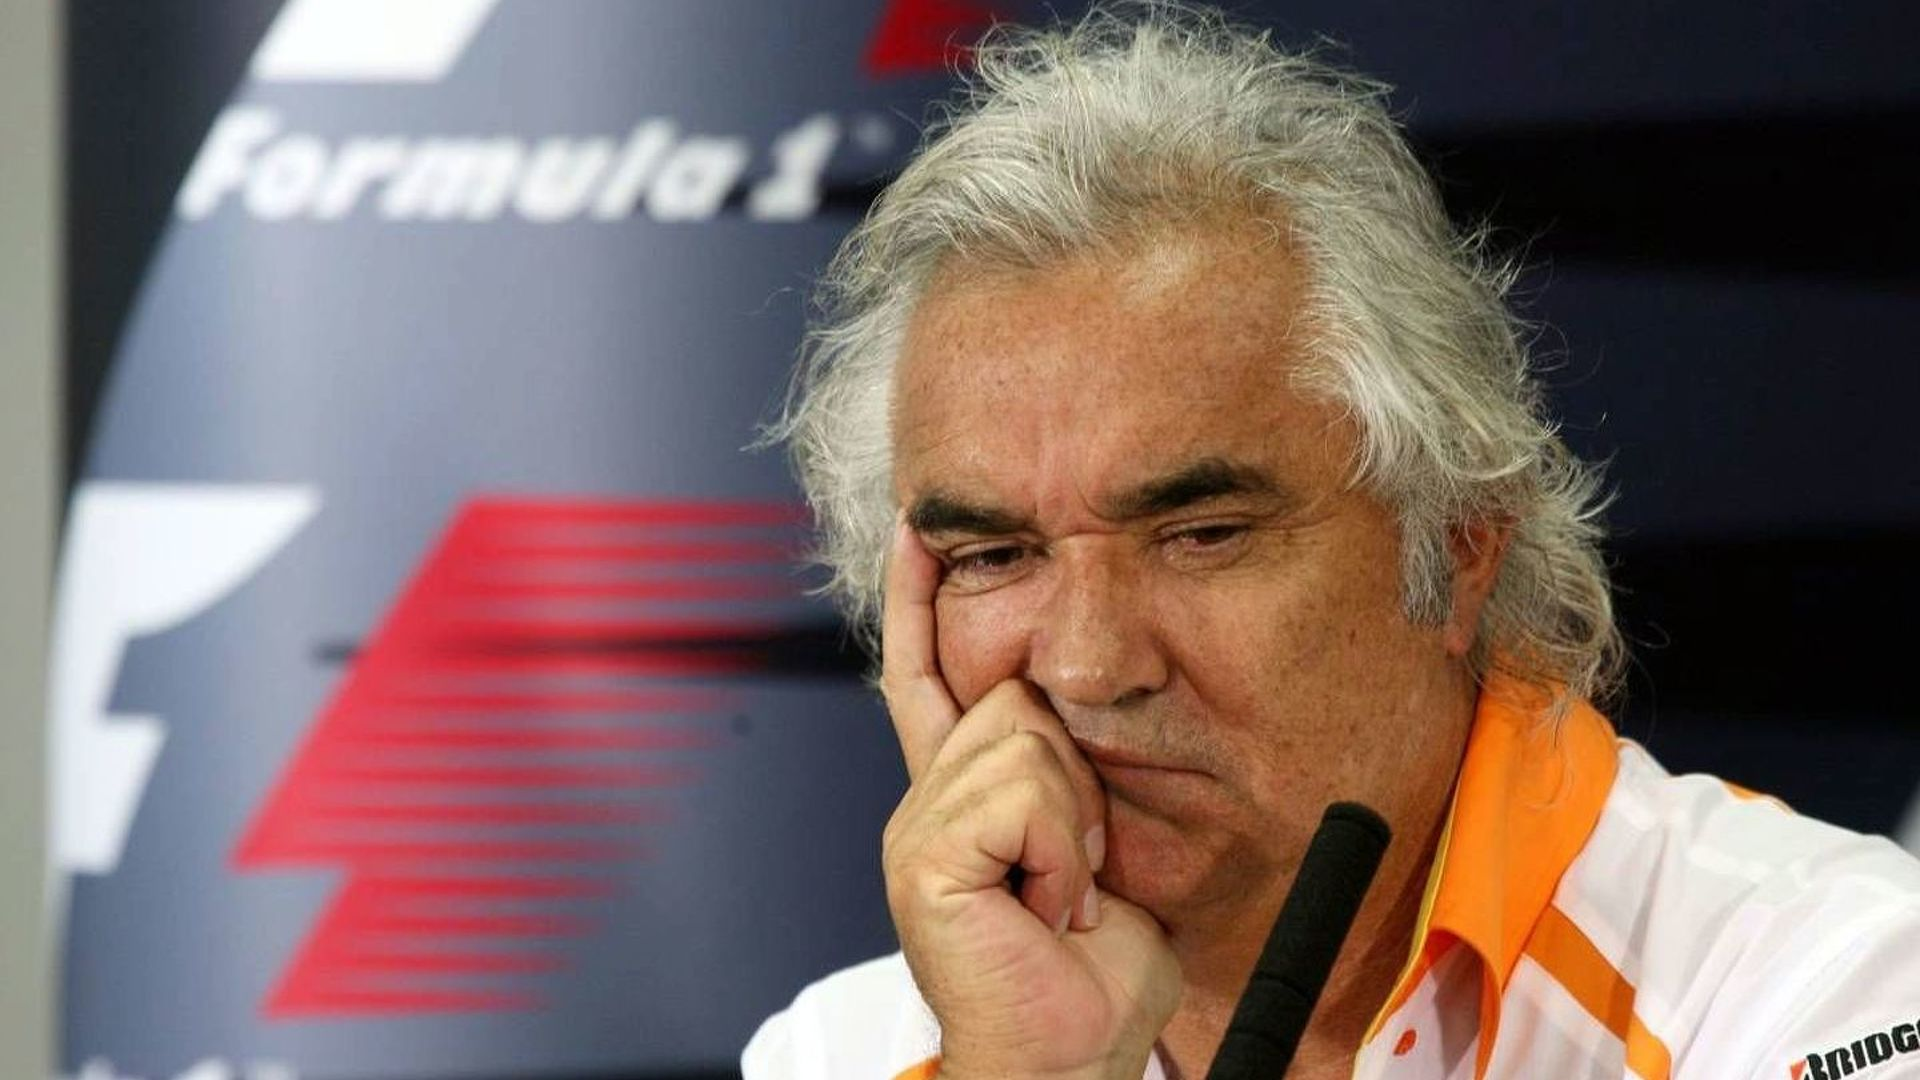 Briatore to sue for damage to driver management business